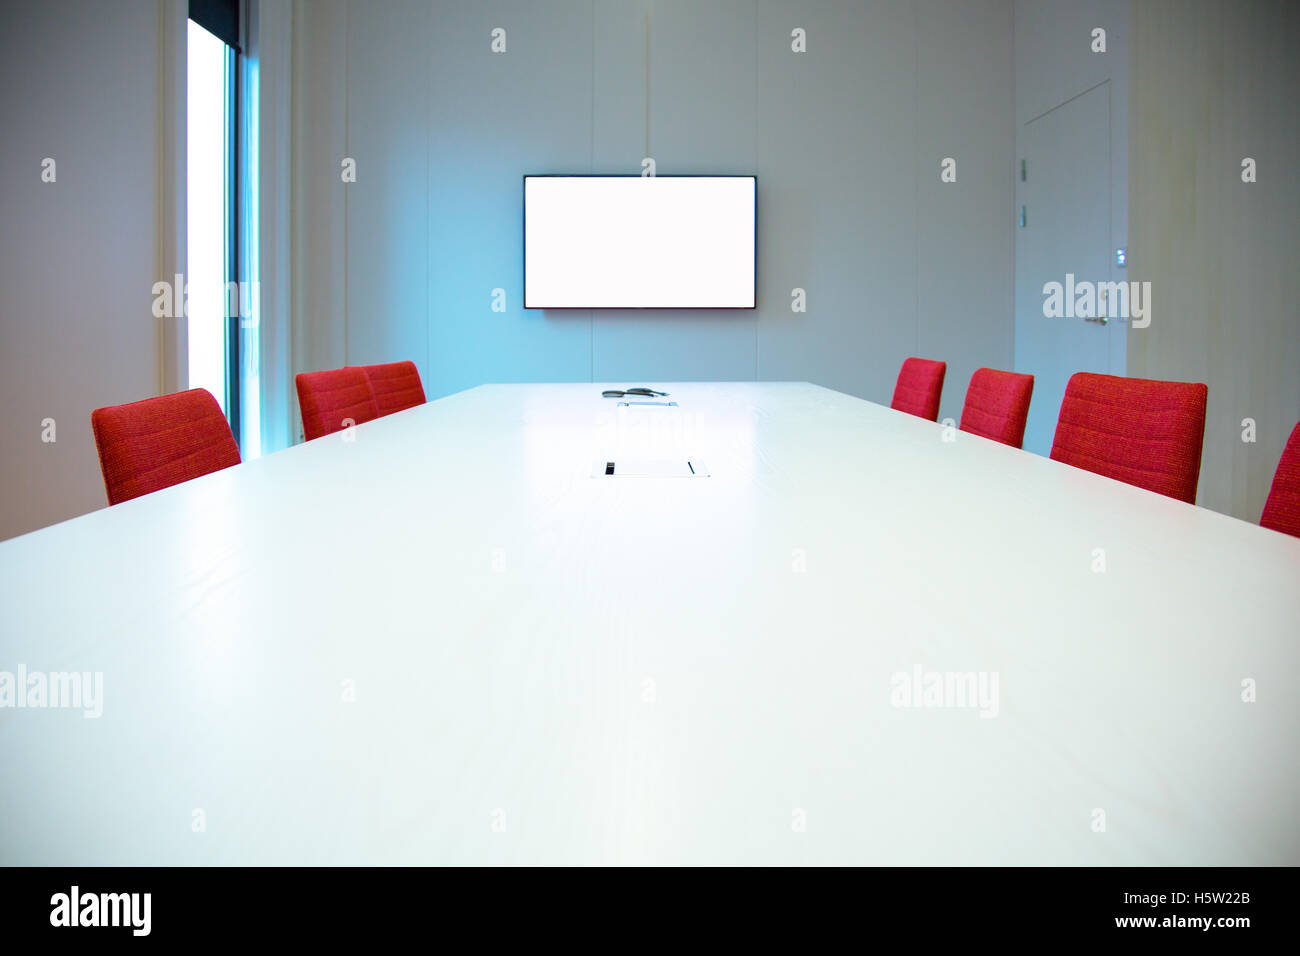 A conference room with chairs and a screen - Stock Image